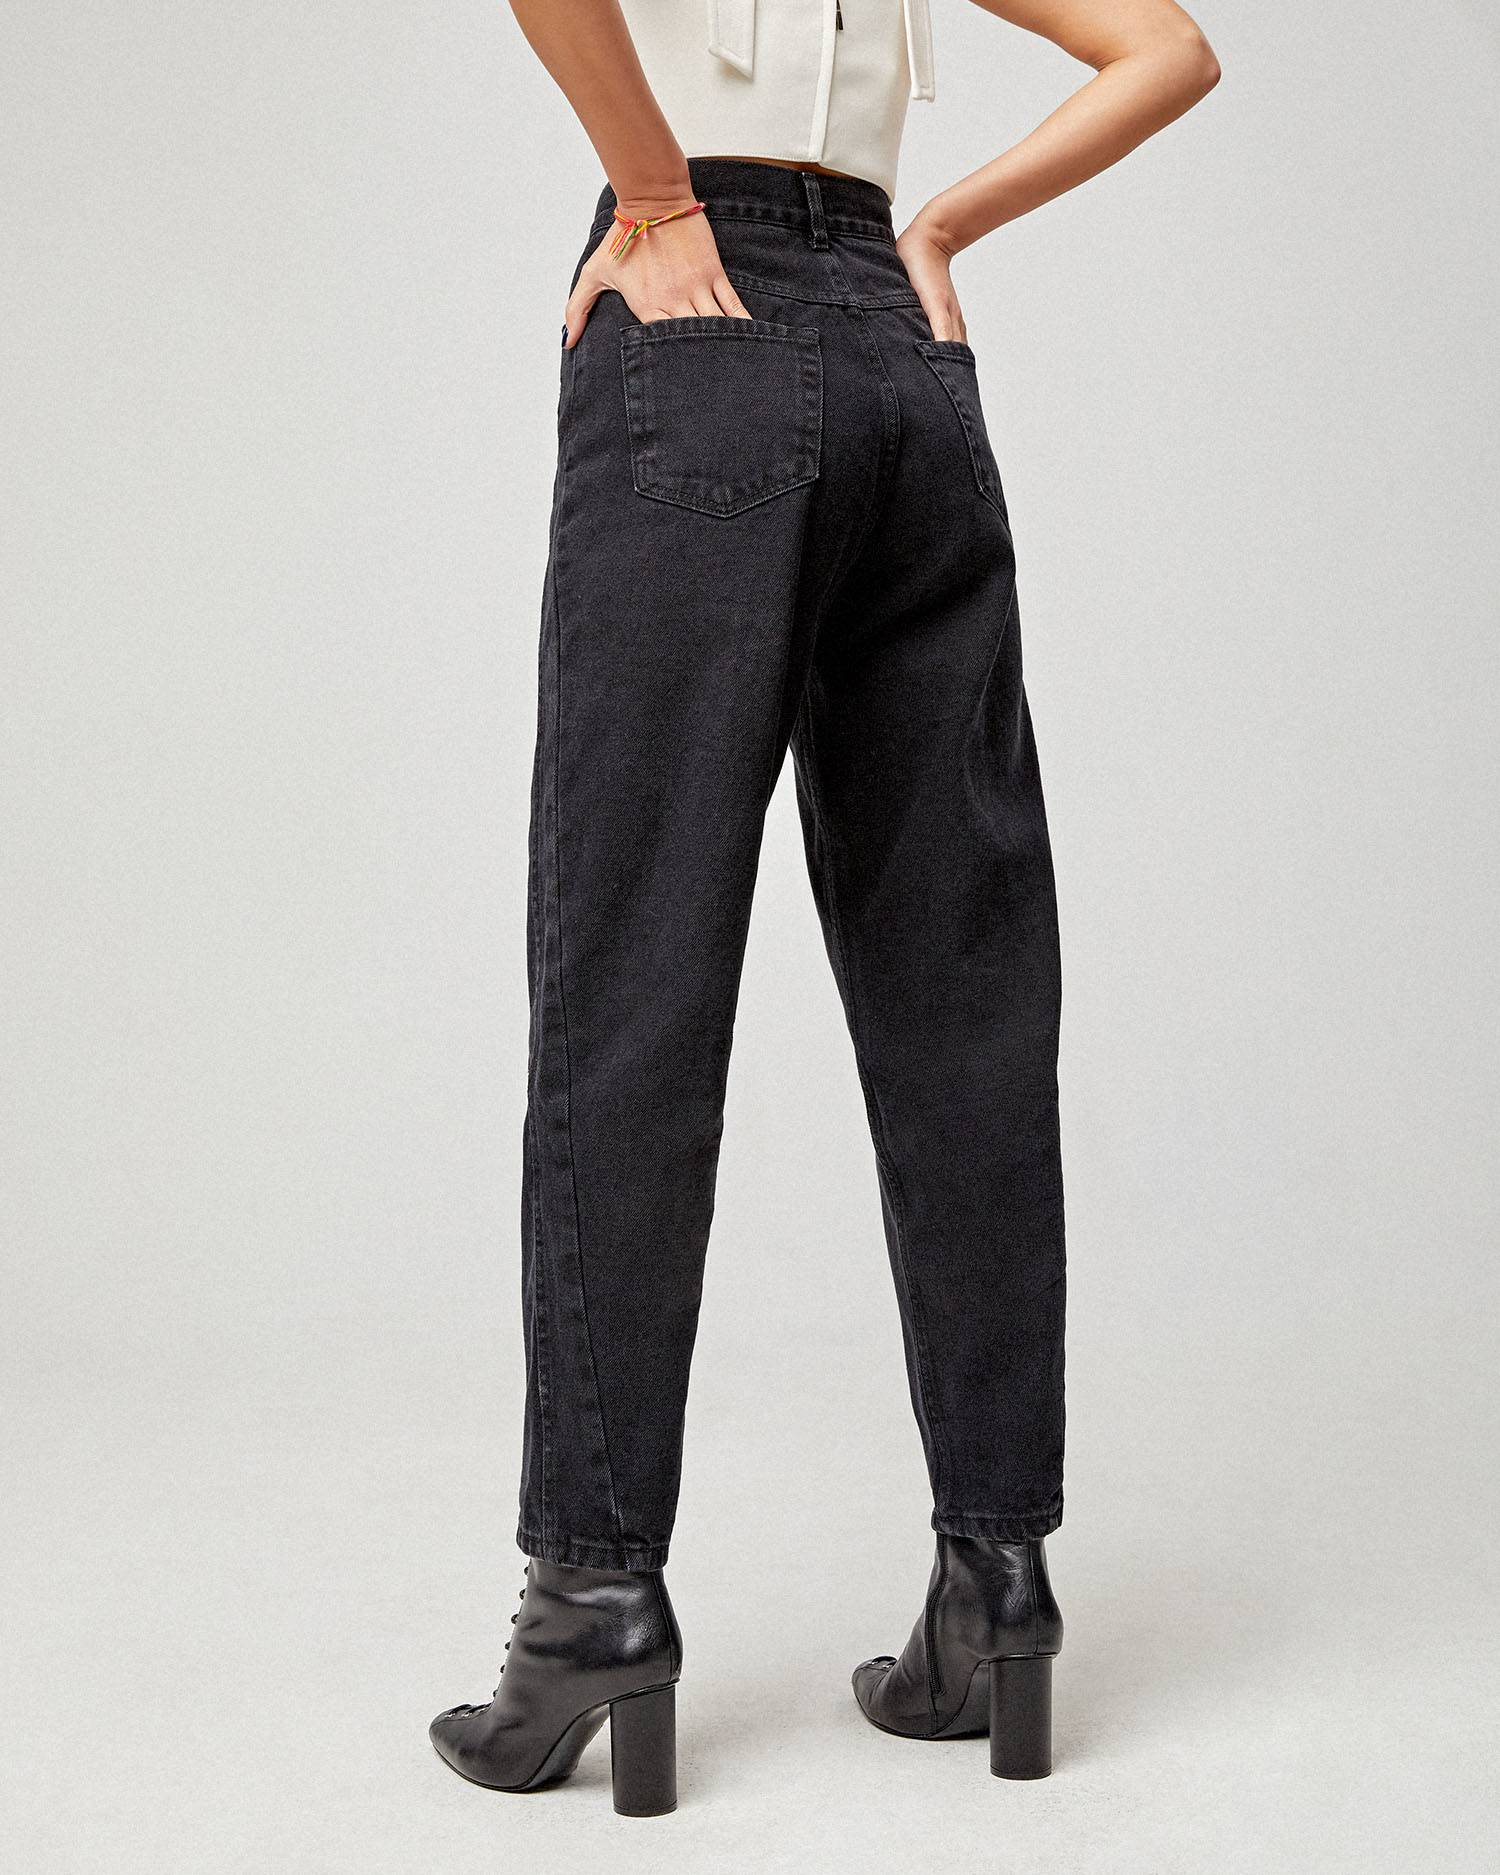 Black mom-fit jeans